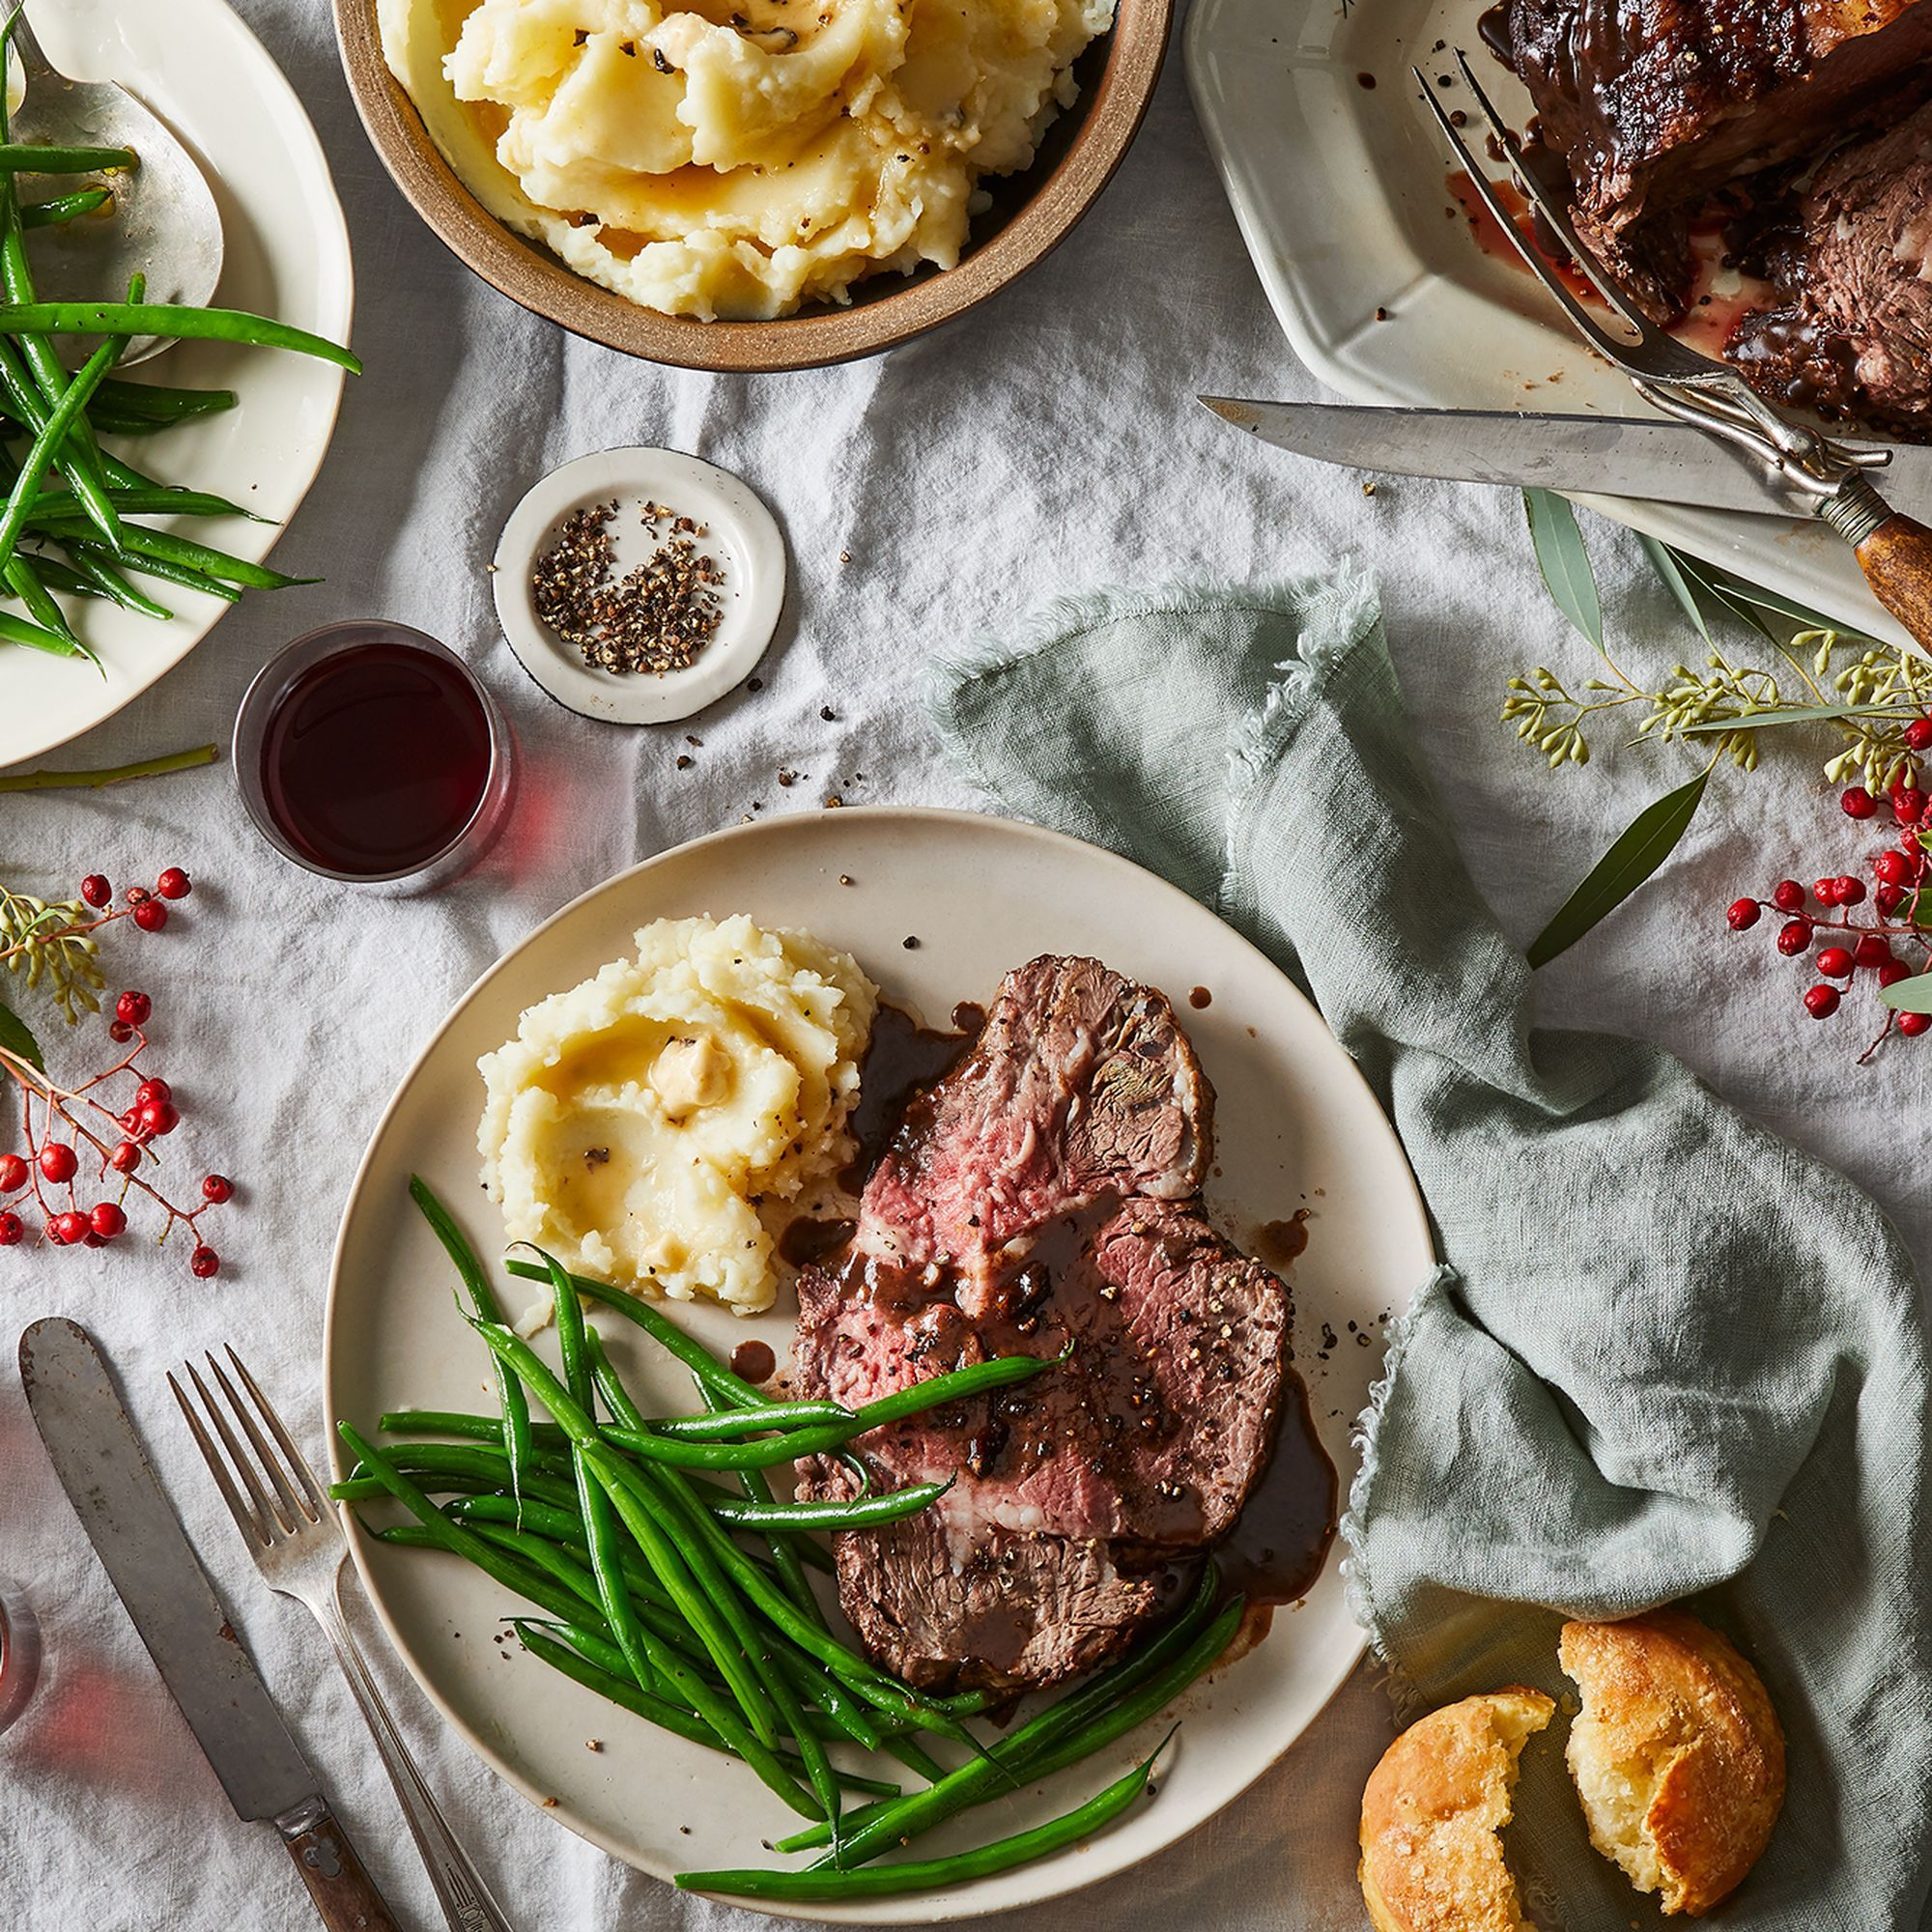 Prime Rib Stars In This 90% Hands-Off Holiday Feast (With